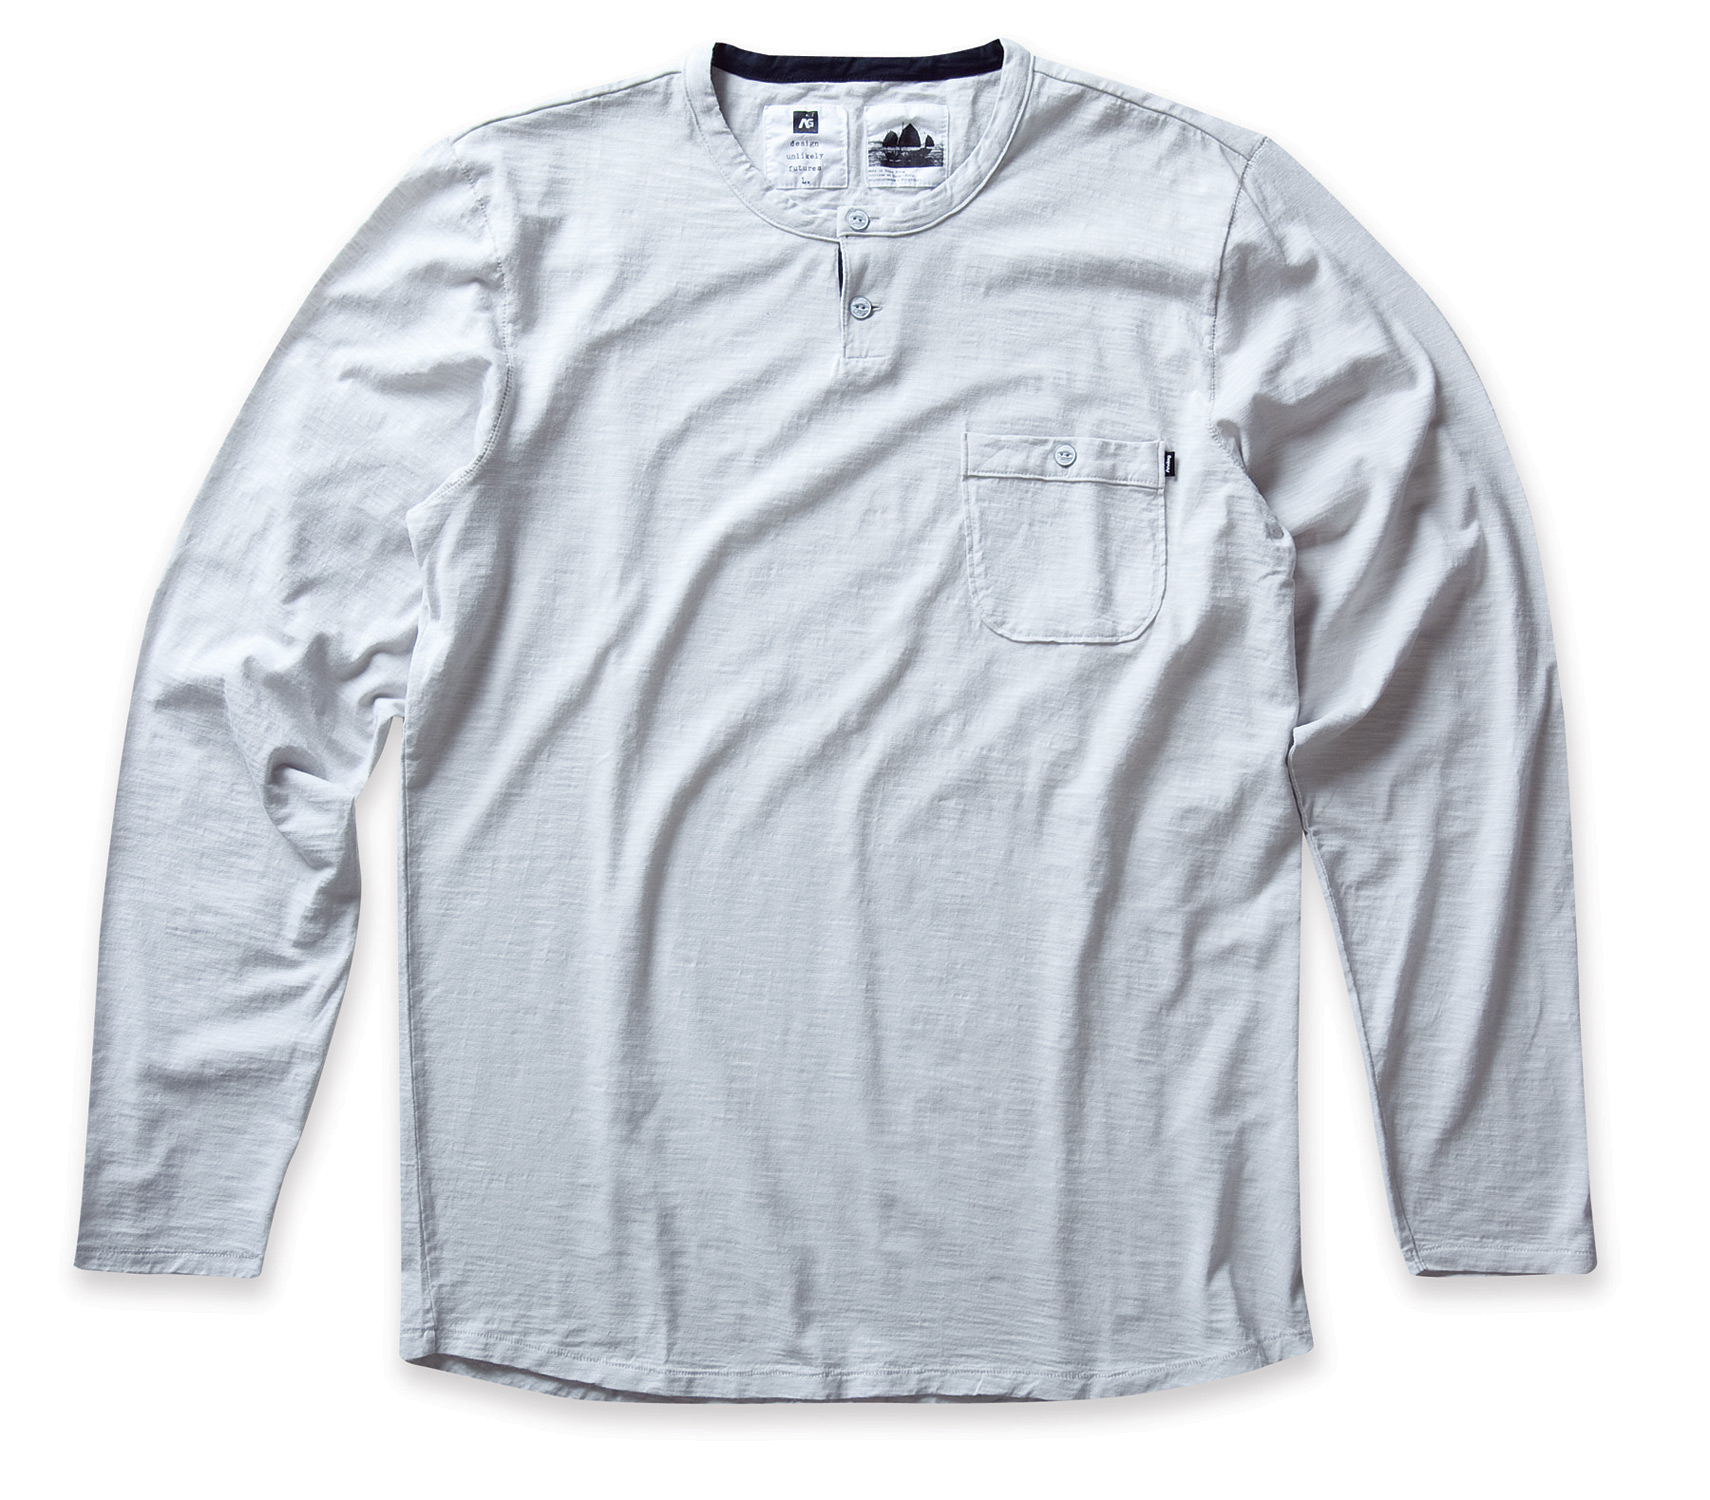 Key Features of the Analog Hastings L/S Crew Shirt: Slim fit custom 2 button henley neck with single button pocket and shaped hem Contrast inner neck piecing and back yoke detail with whipstitch throughout 100% cotton slub jersey with garment wash and softeners - $26.95